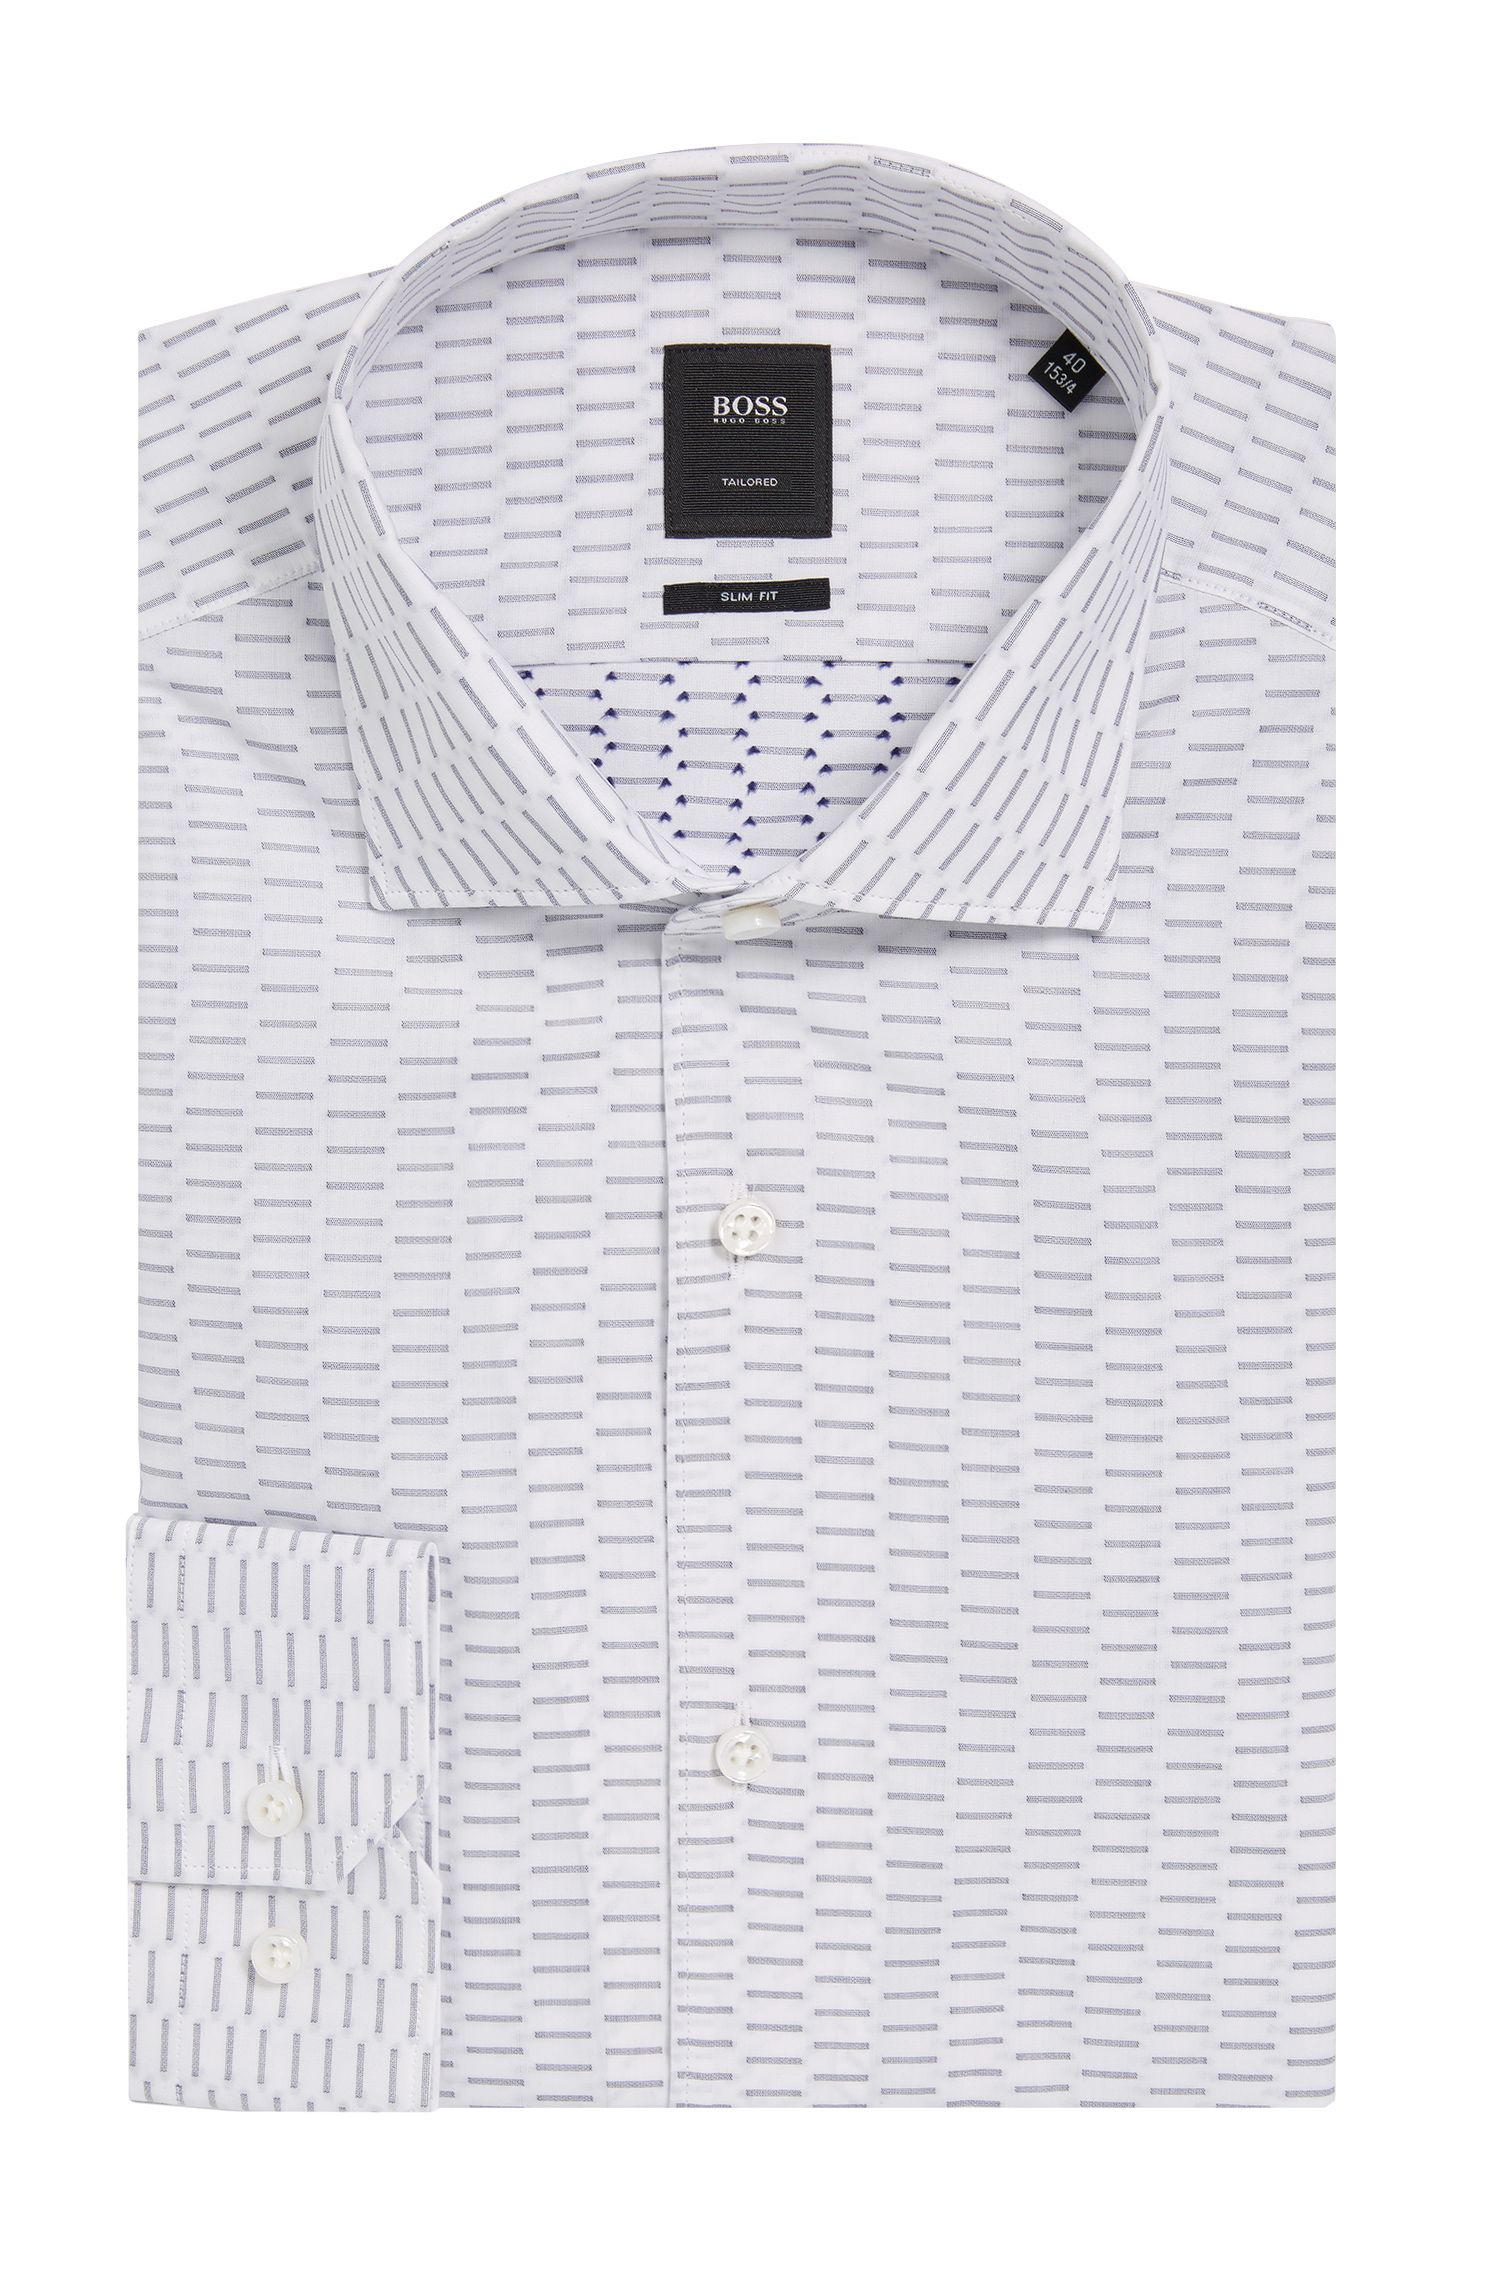 'T-Steven' | Slim Fit, Tailored Dash Printed Cotton Dress Shirt